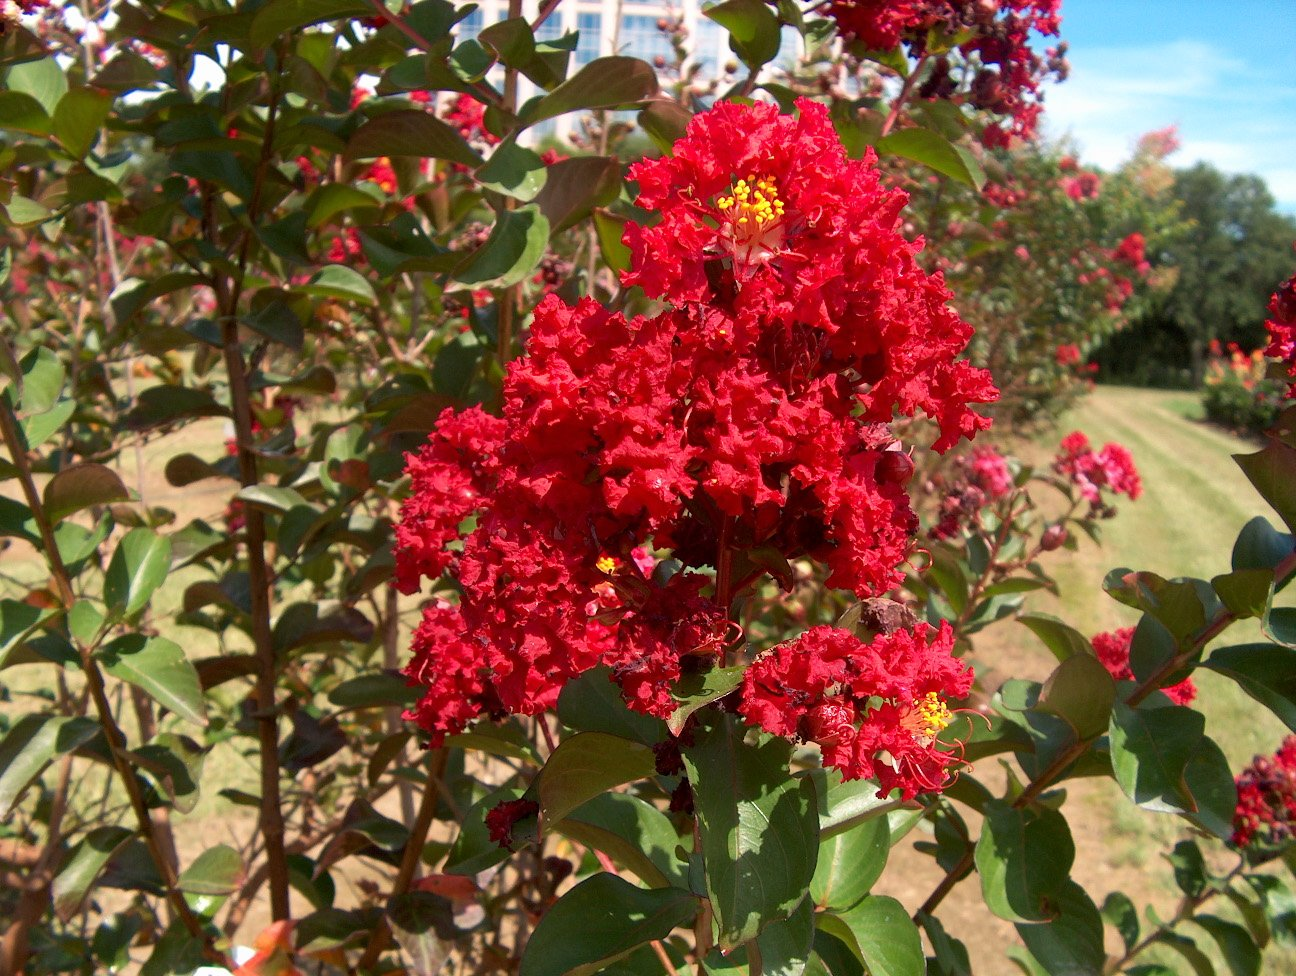 New Life Nursery & Garden- - Red Rocket Crape Myrtle Tree'', Trade Gallon Pot